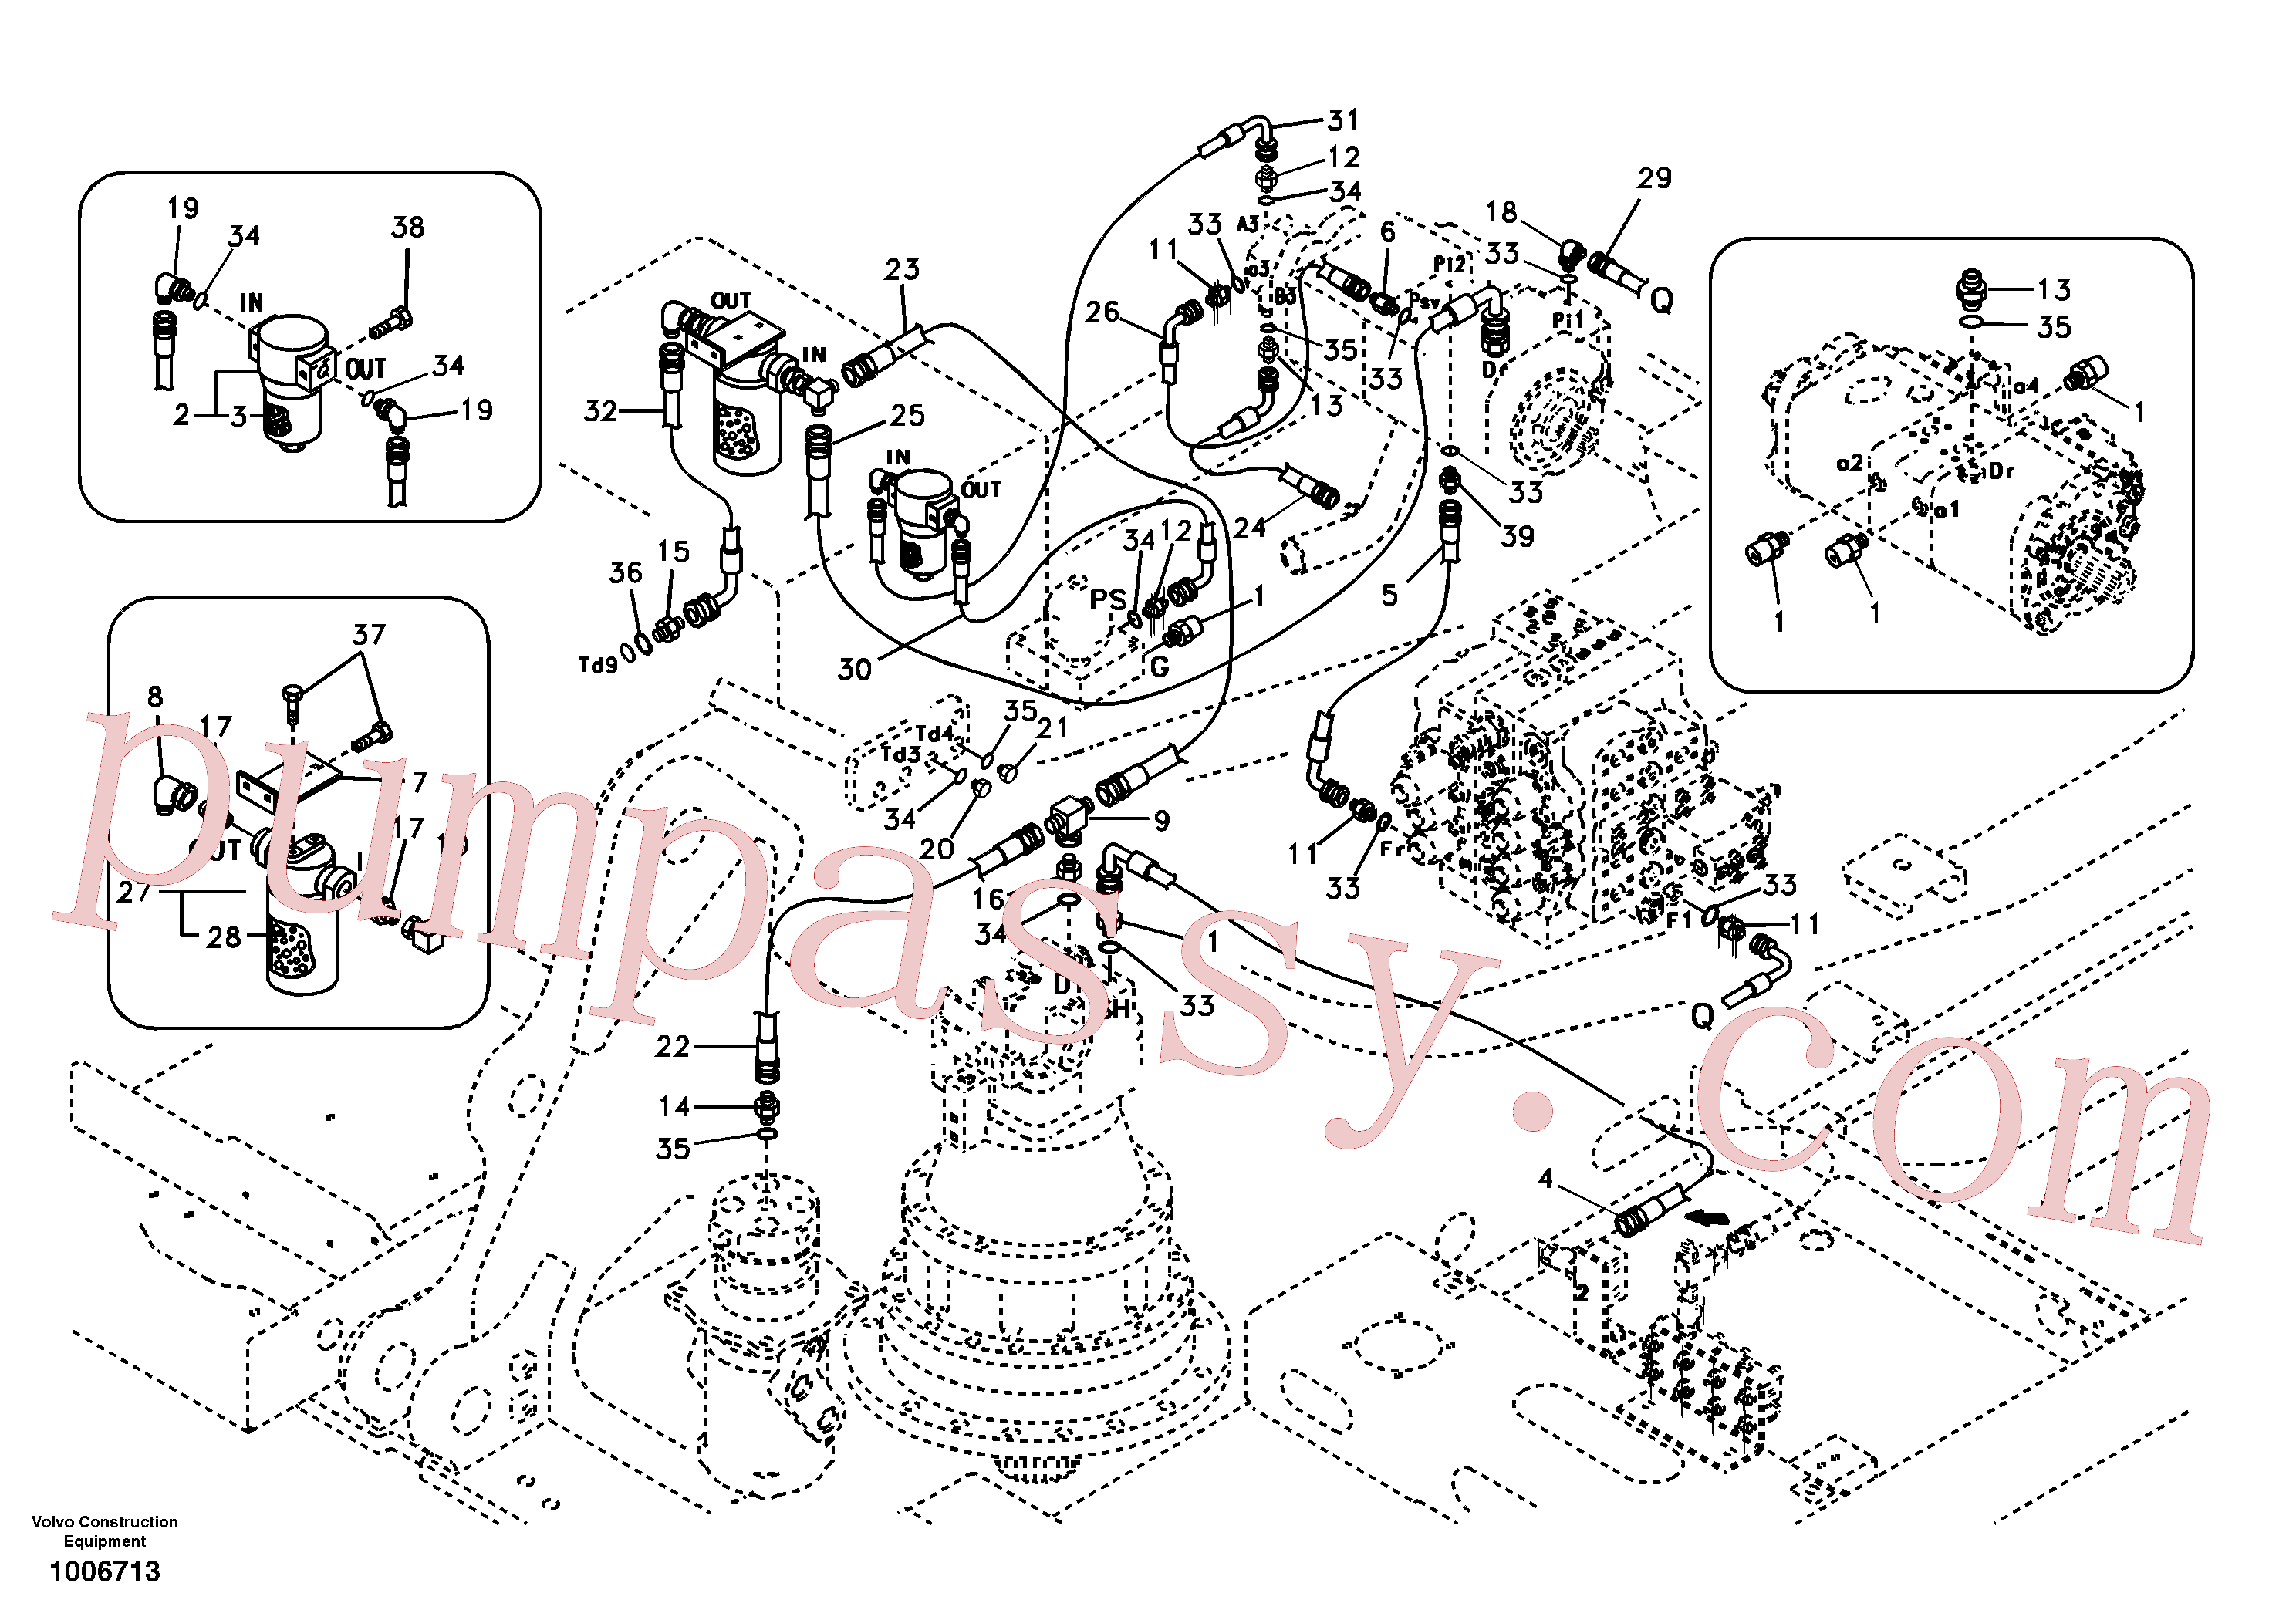 SA9451-05246 for Volvo Servo system, pump piping and filter mount.(1006713 assembly)